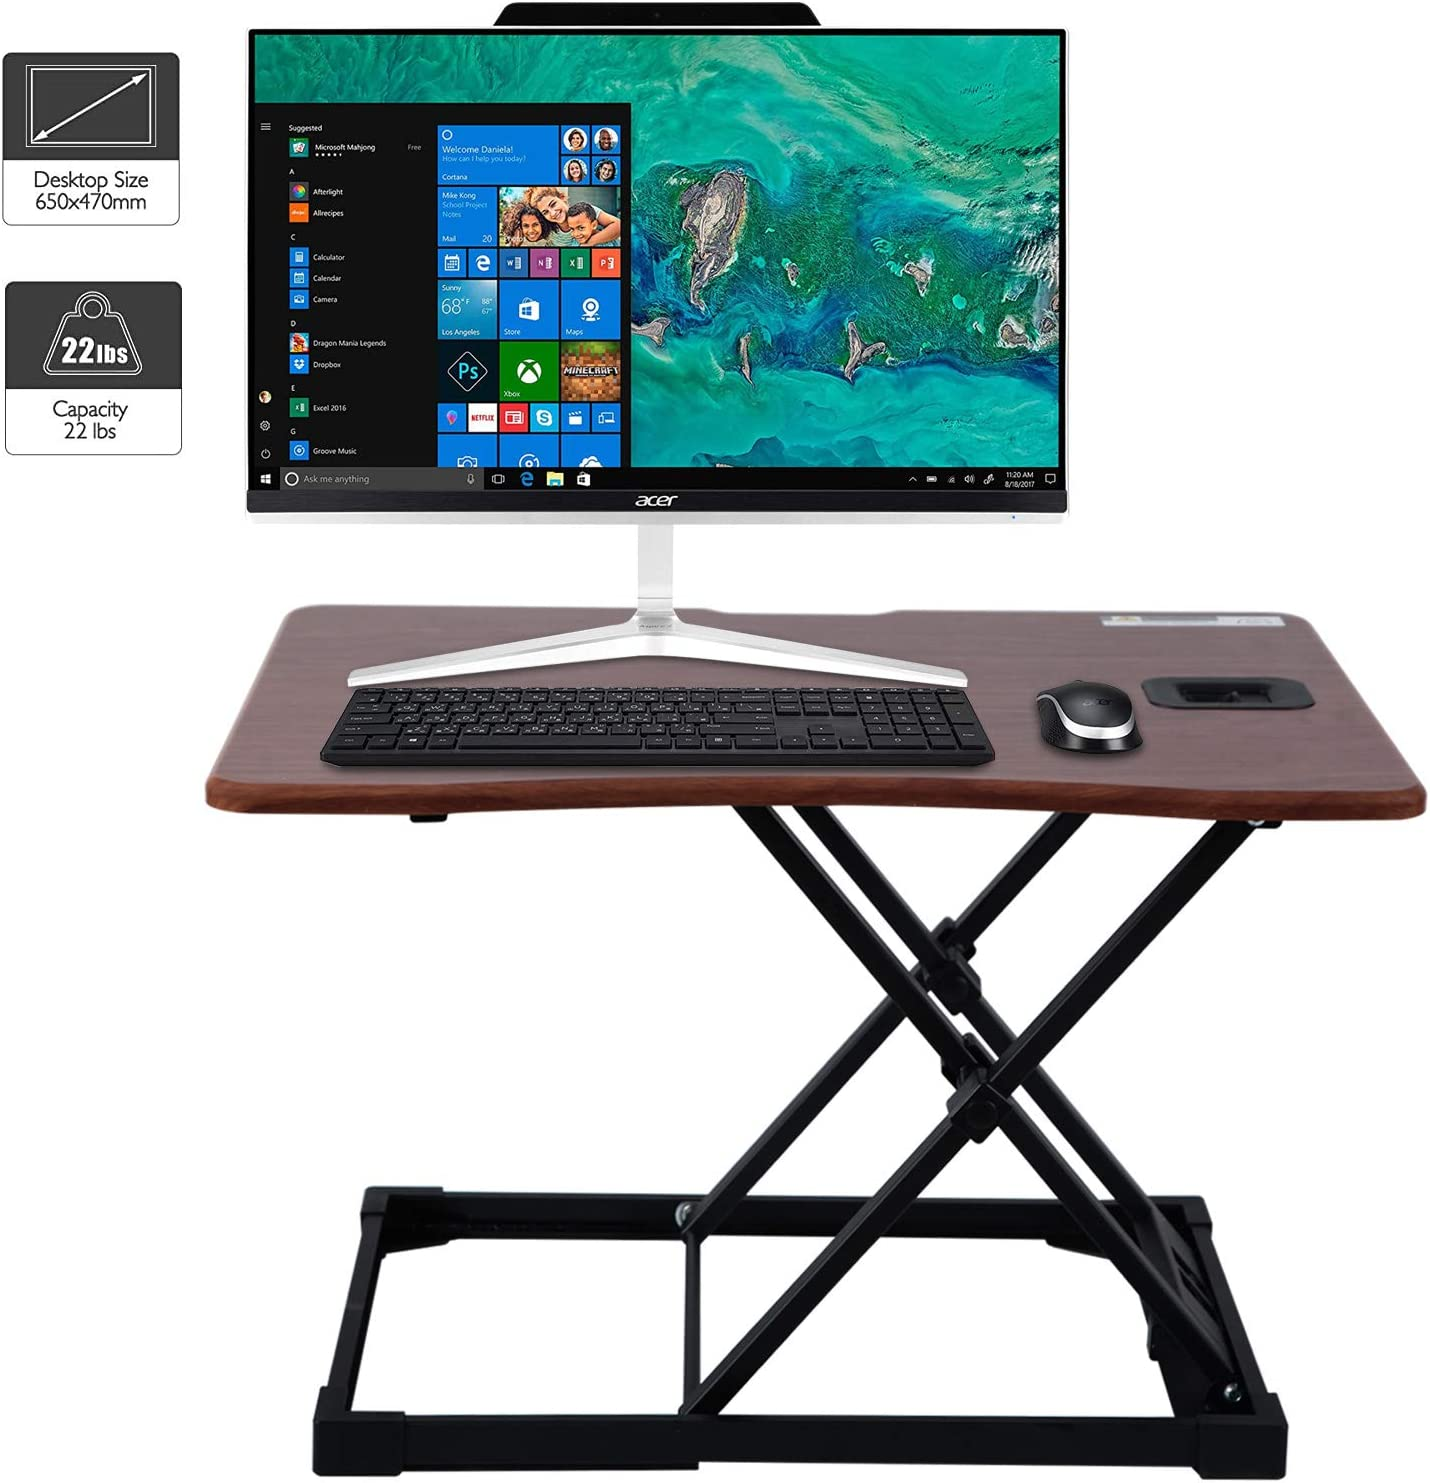 WorkGroup Height Adjustable Desk Converter 25.6 inches | Sit Standing Desk Riser Computer Workstation Home Office Tabletop for Monitor and Laptop